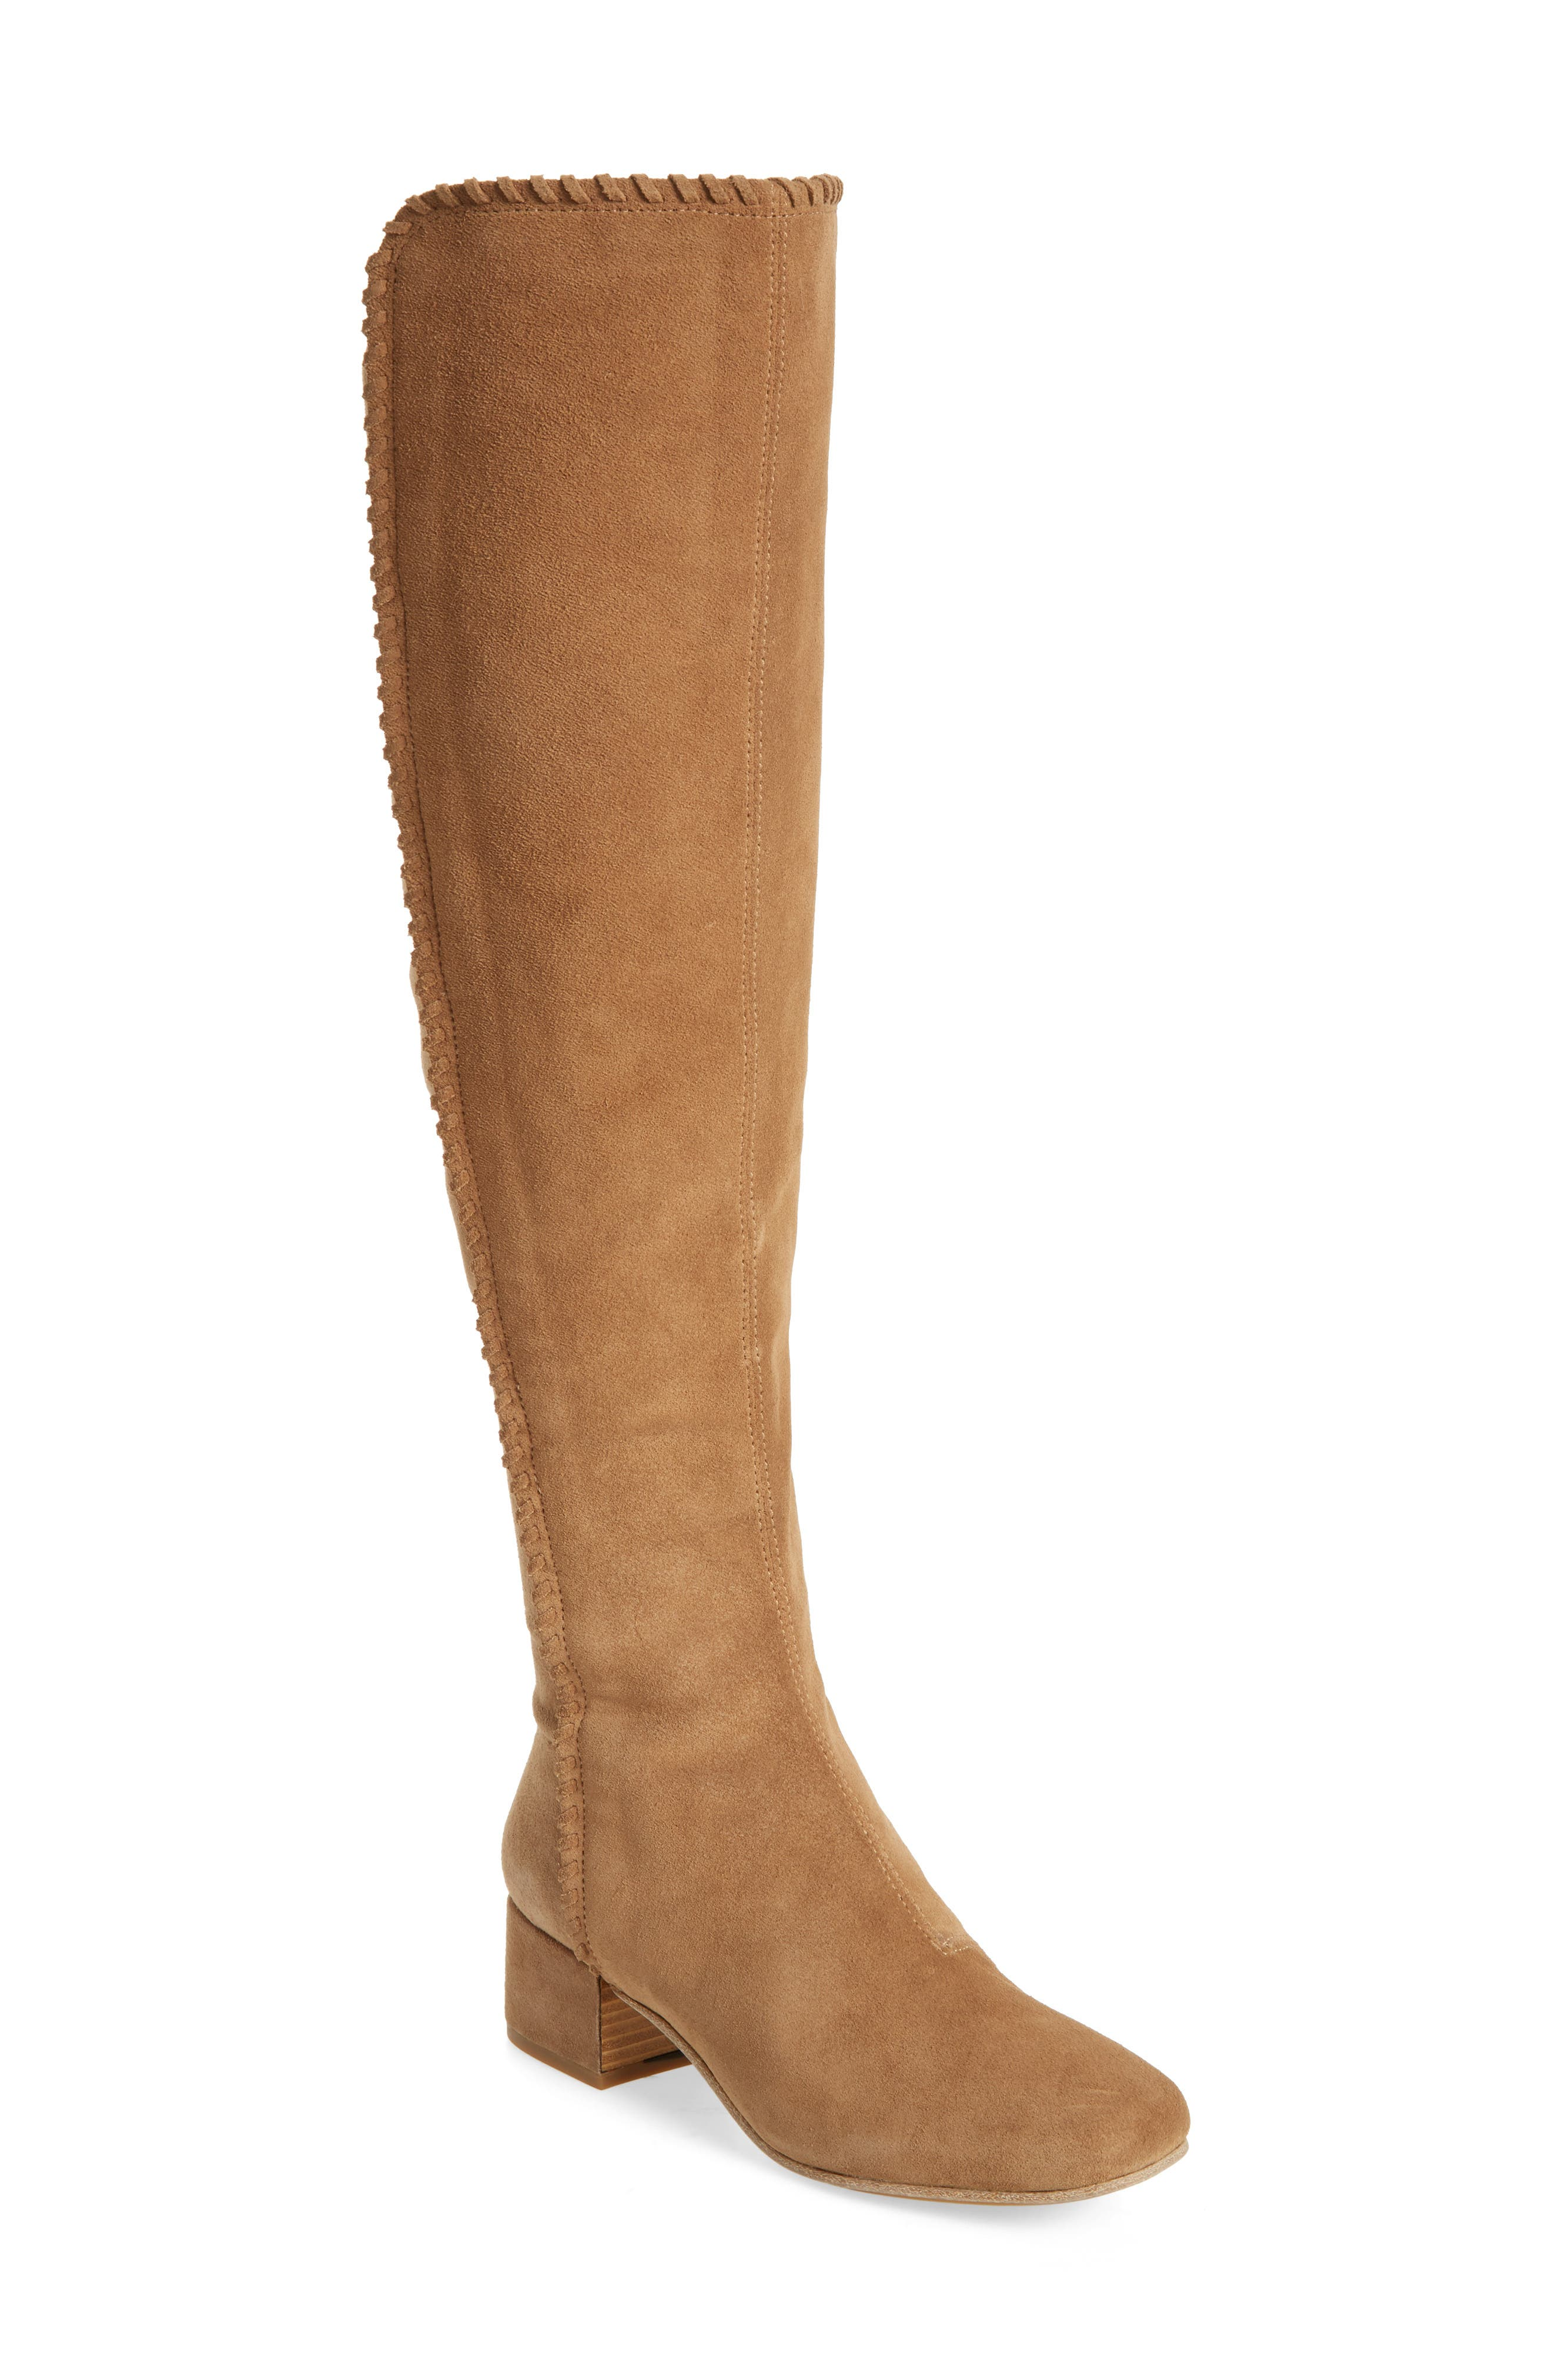 Emery Over the Knee Boot,                             Main thumbnail 1, color,                             Camel Suede